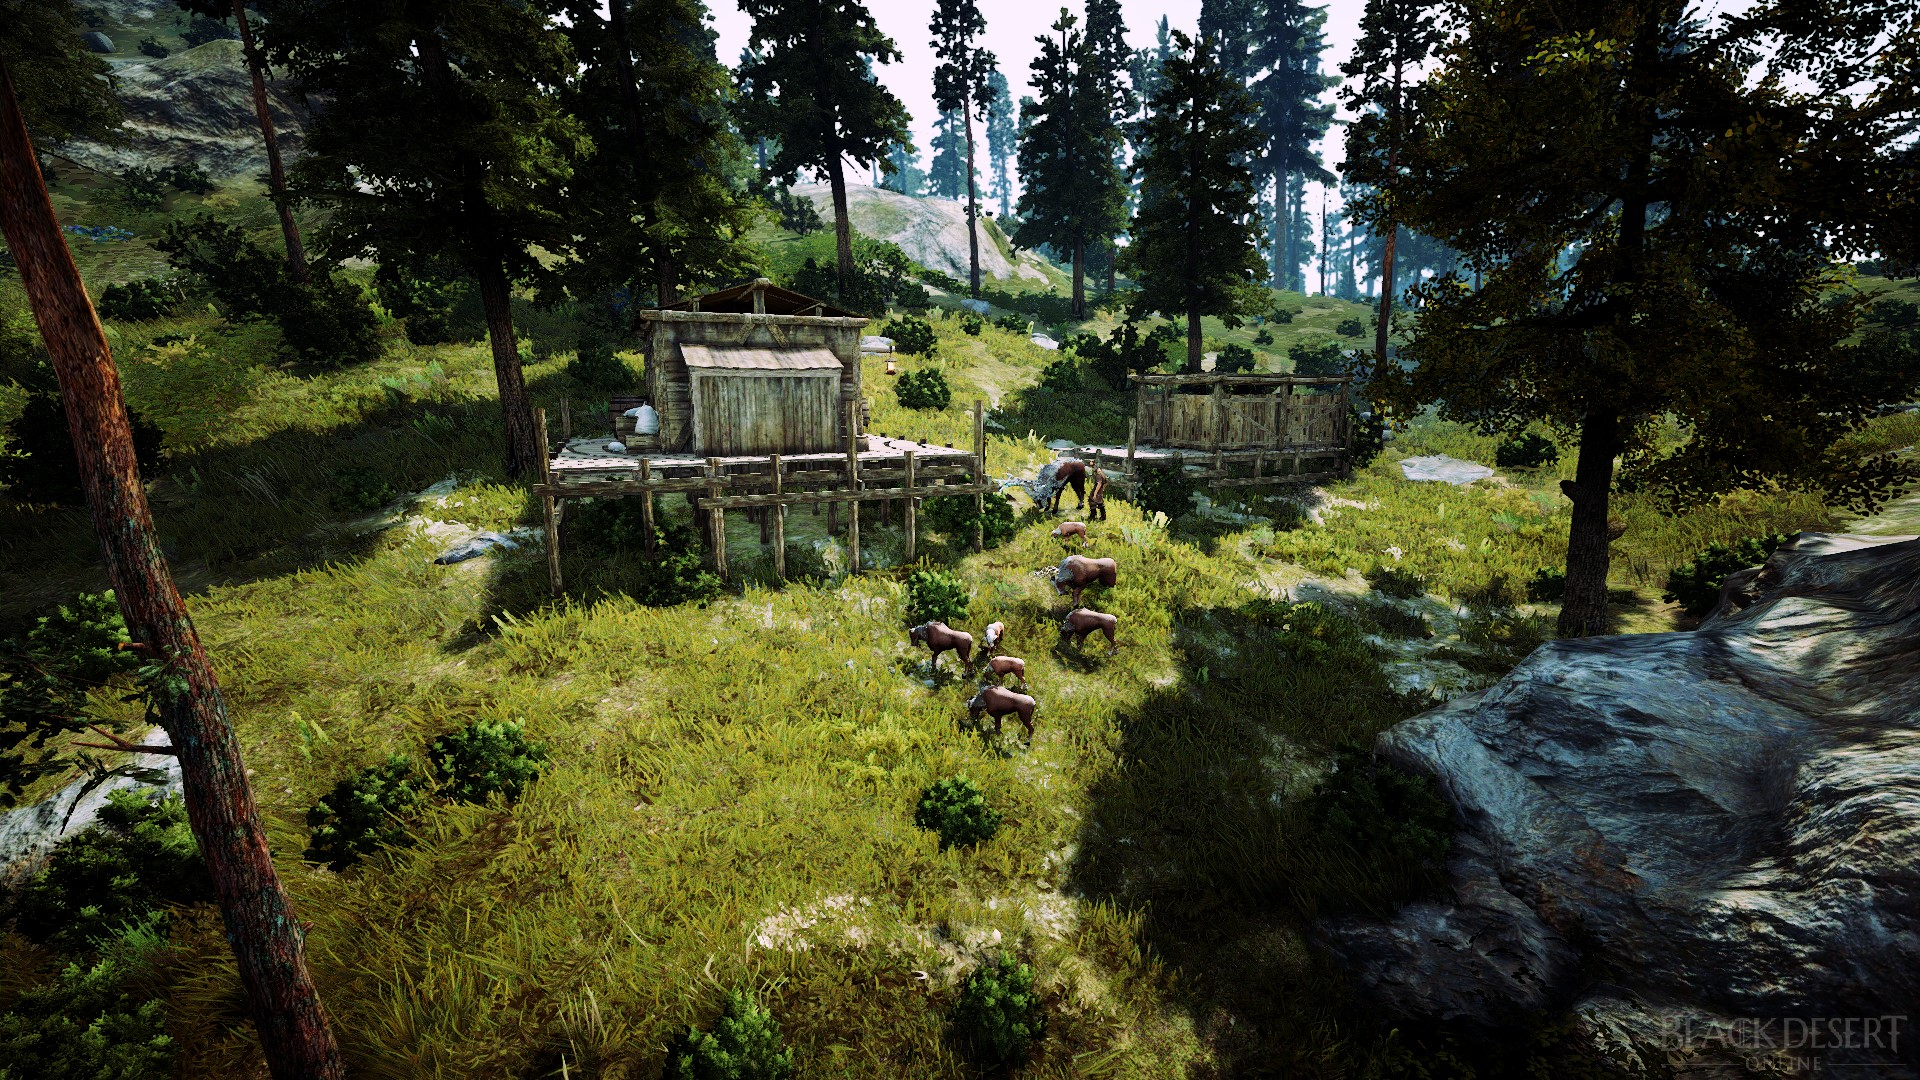 Phoniel's Cabin | Black Desert Wiki | FANDOM powered by Wikia